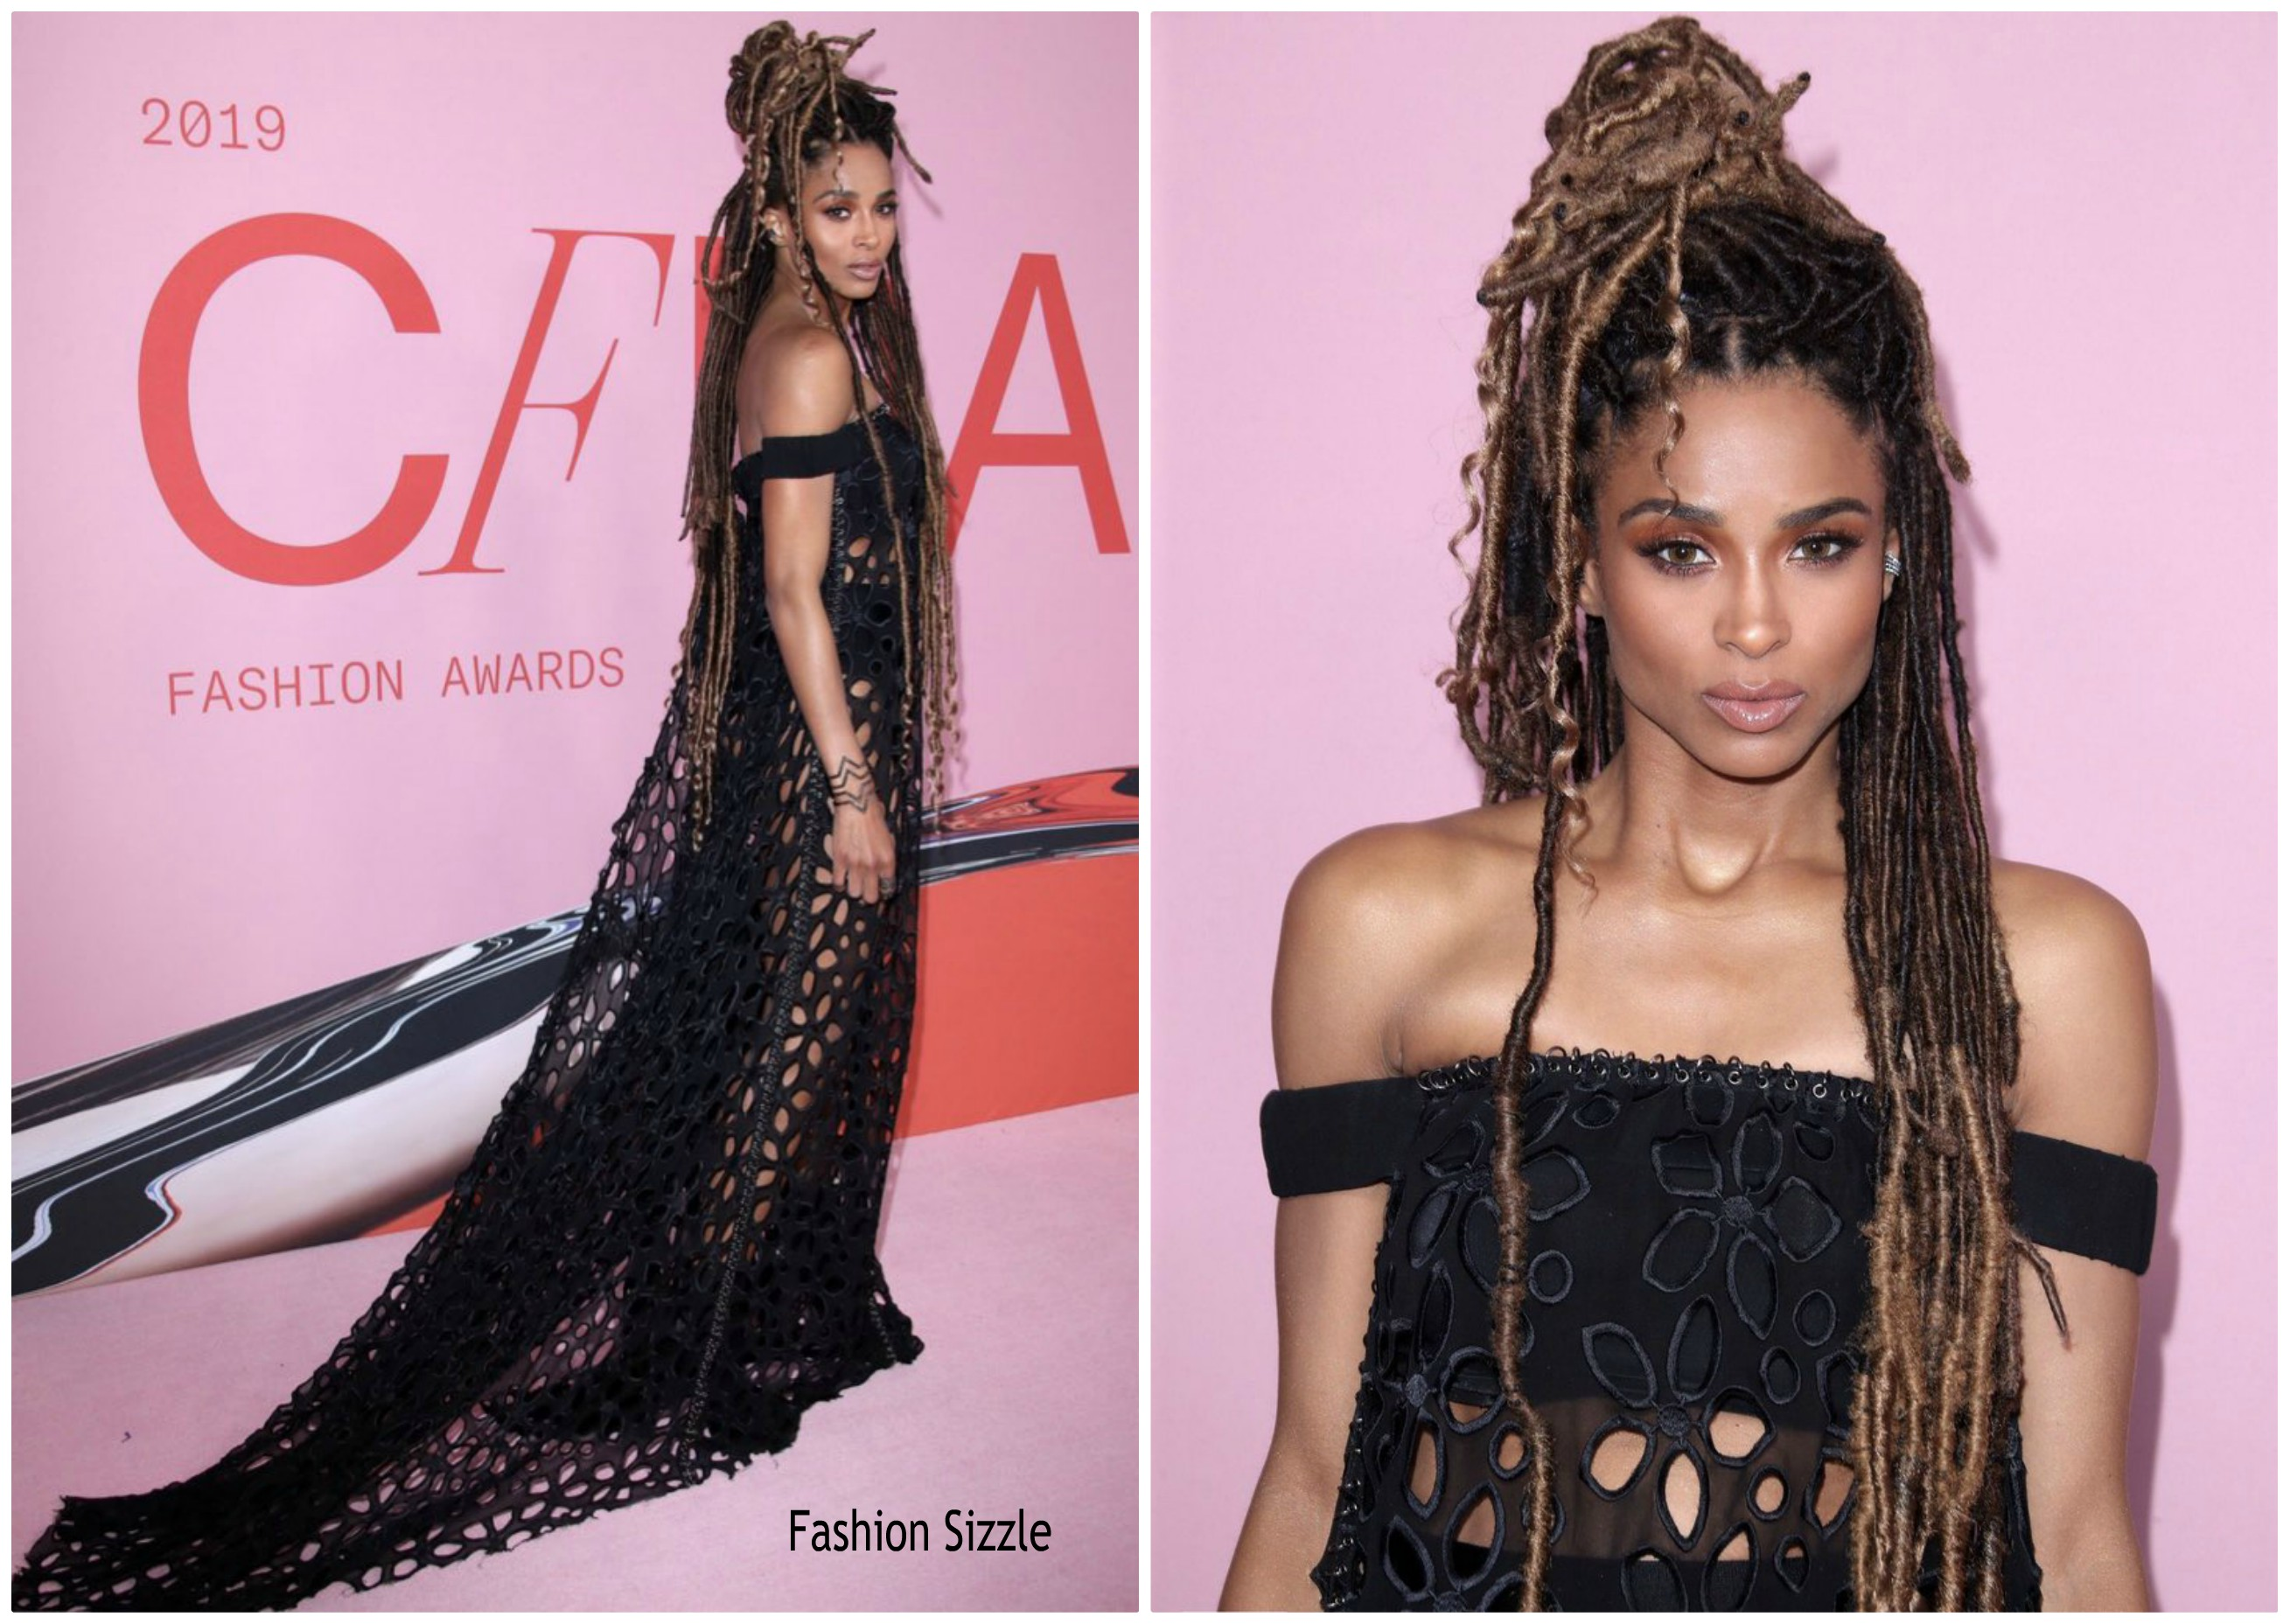 ciara-in-vera-wang-cfda-fashion-awards-2019